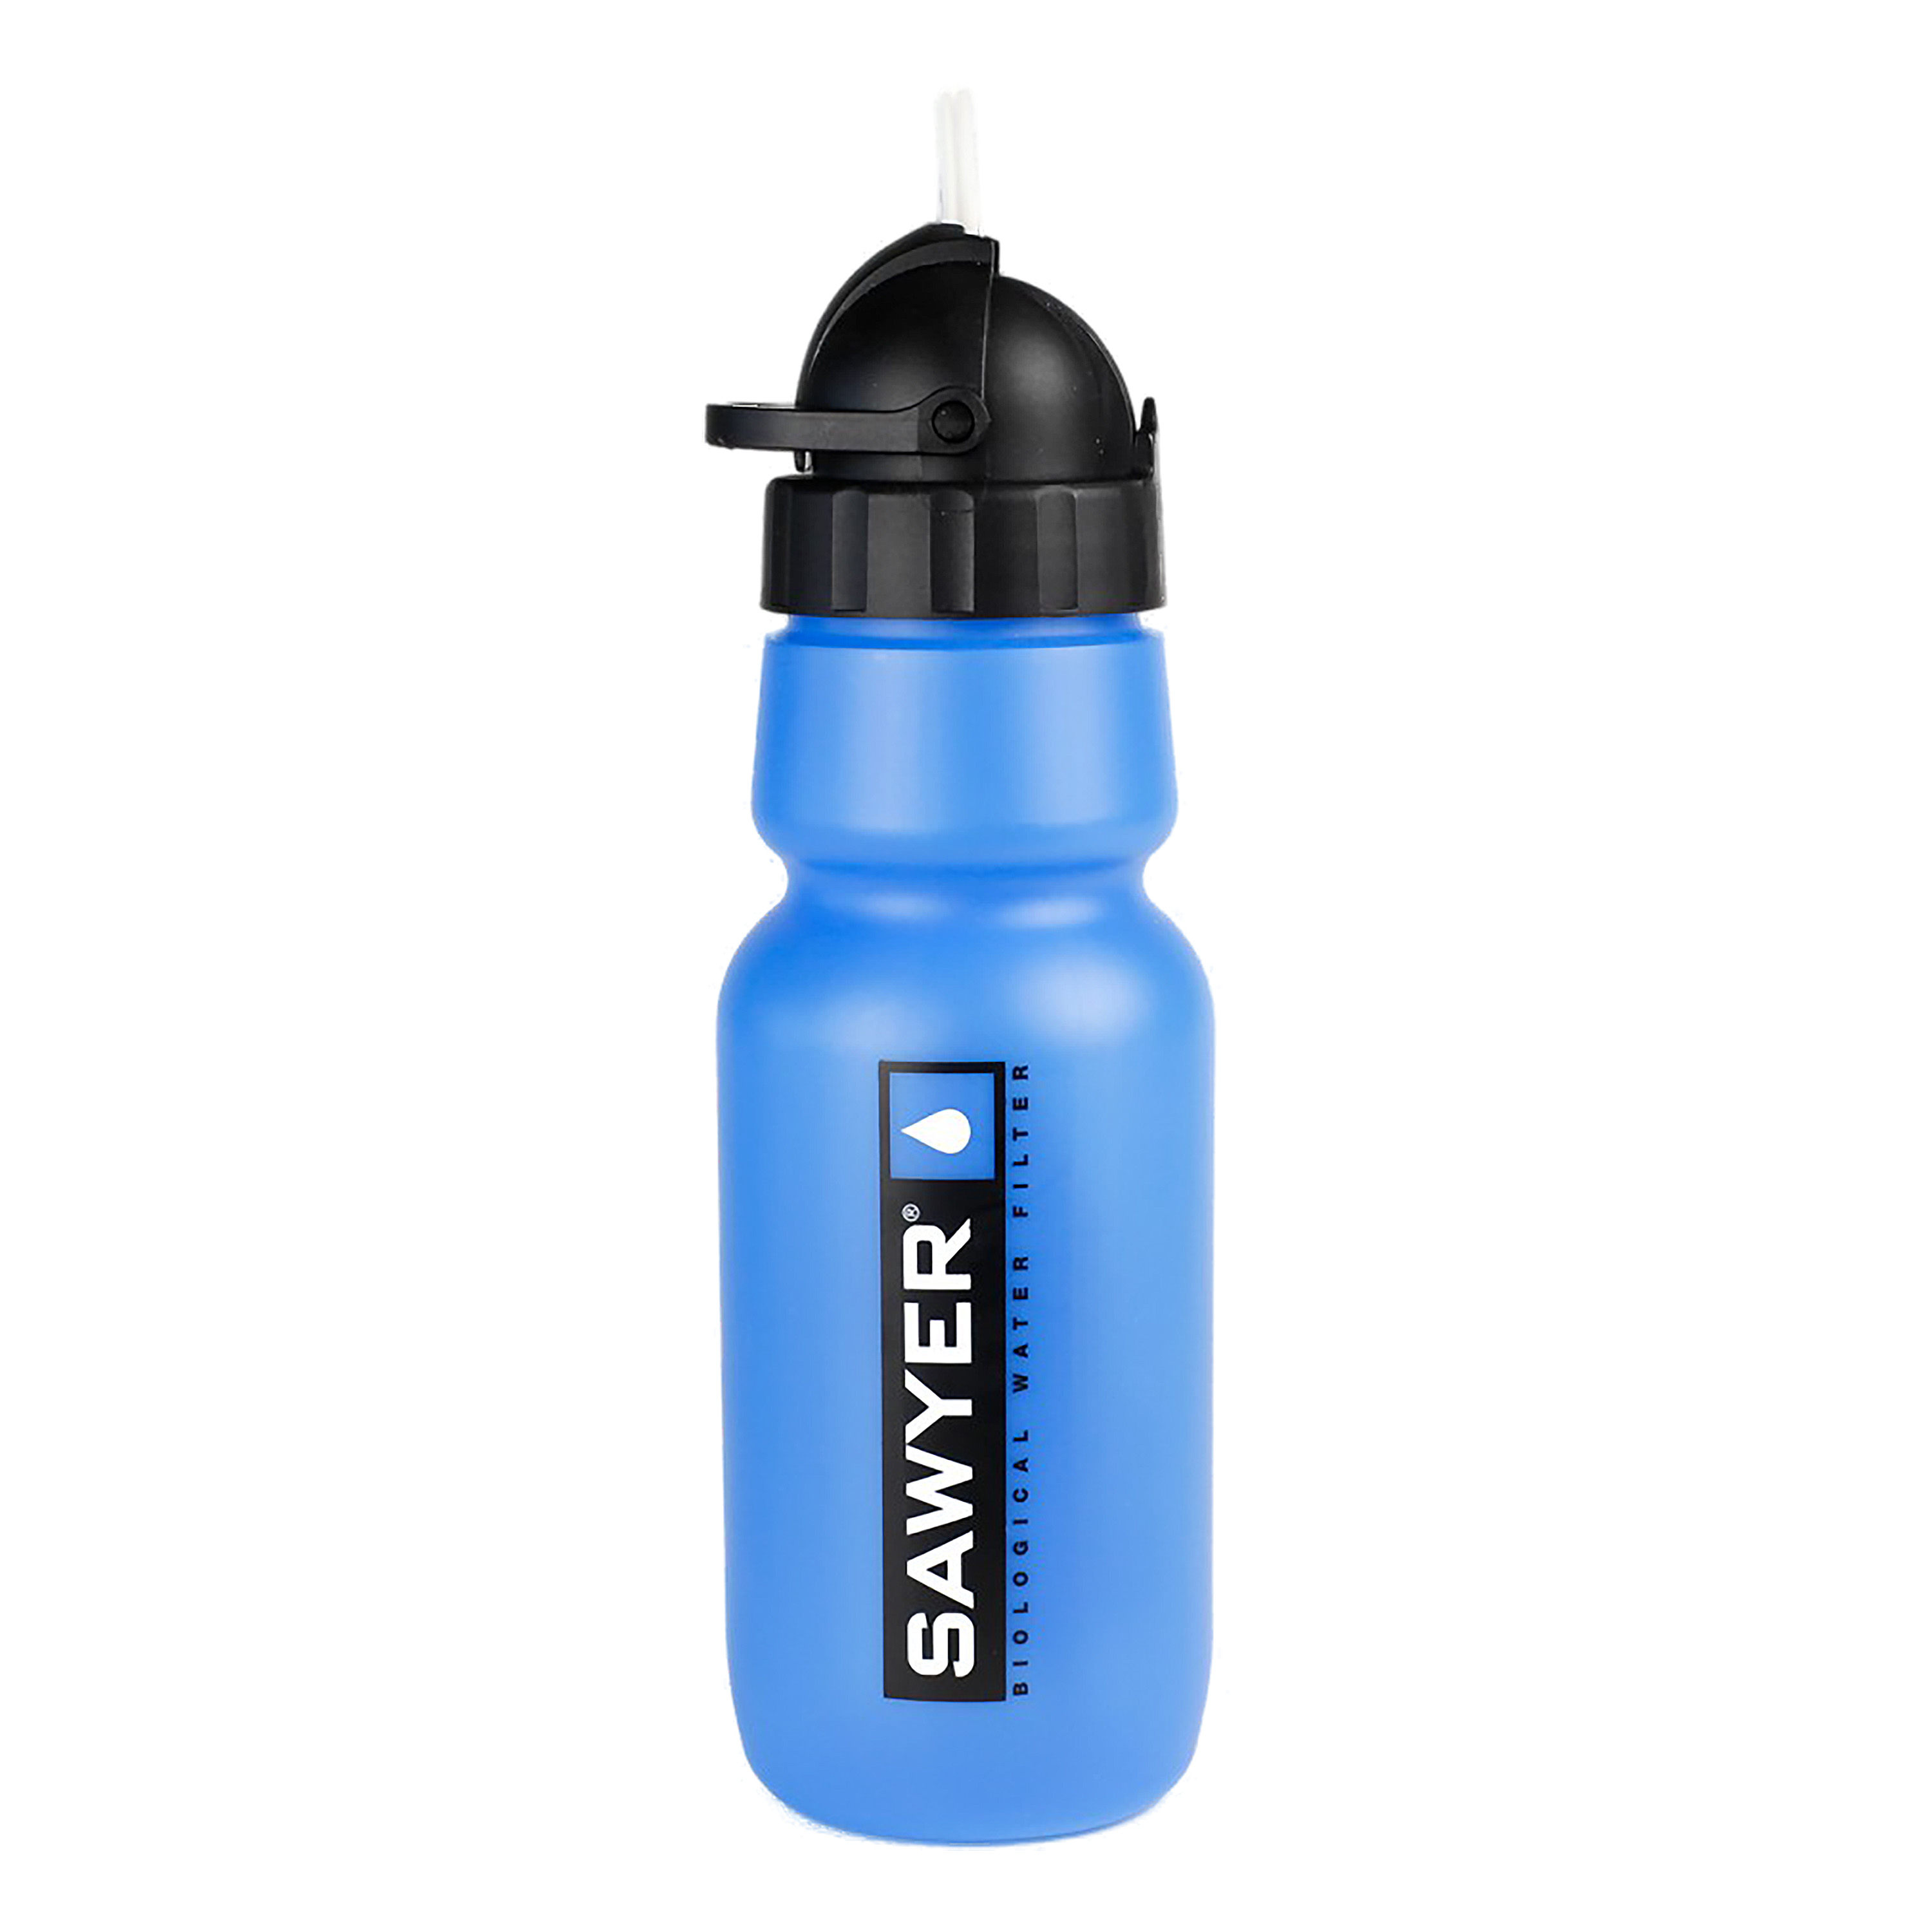 Sawyer 1L Water Bottle with Filter